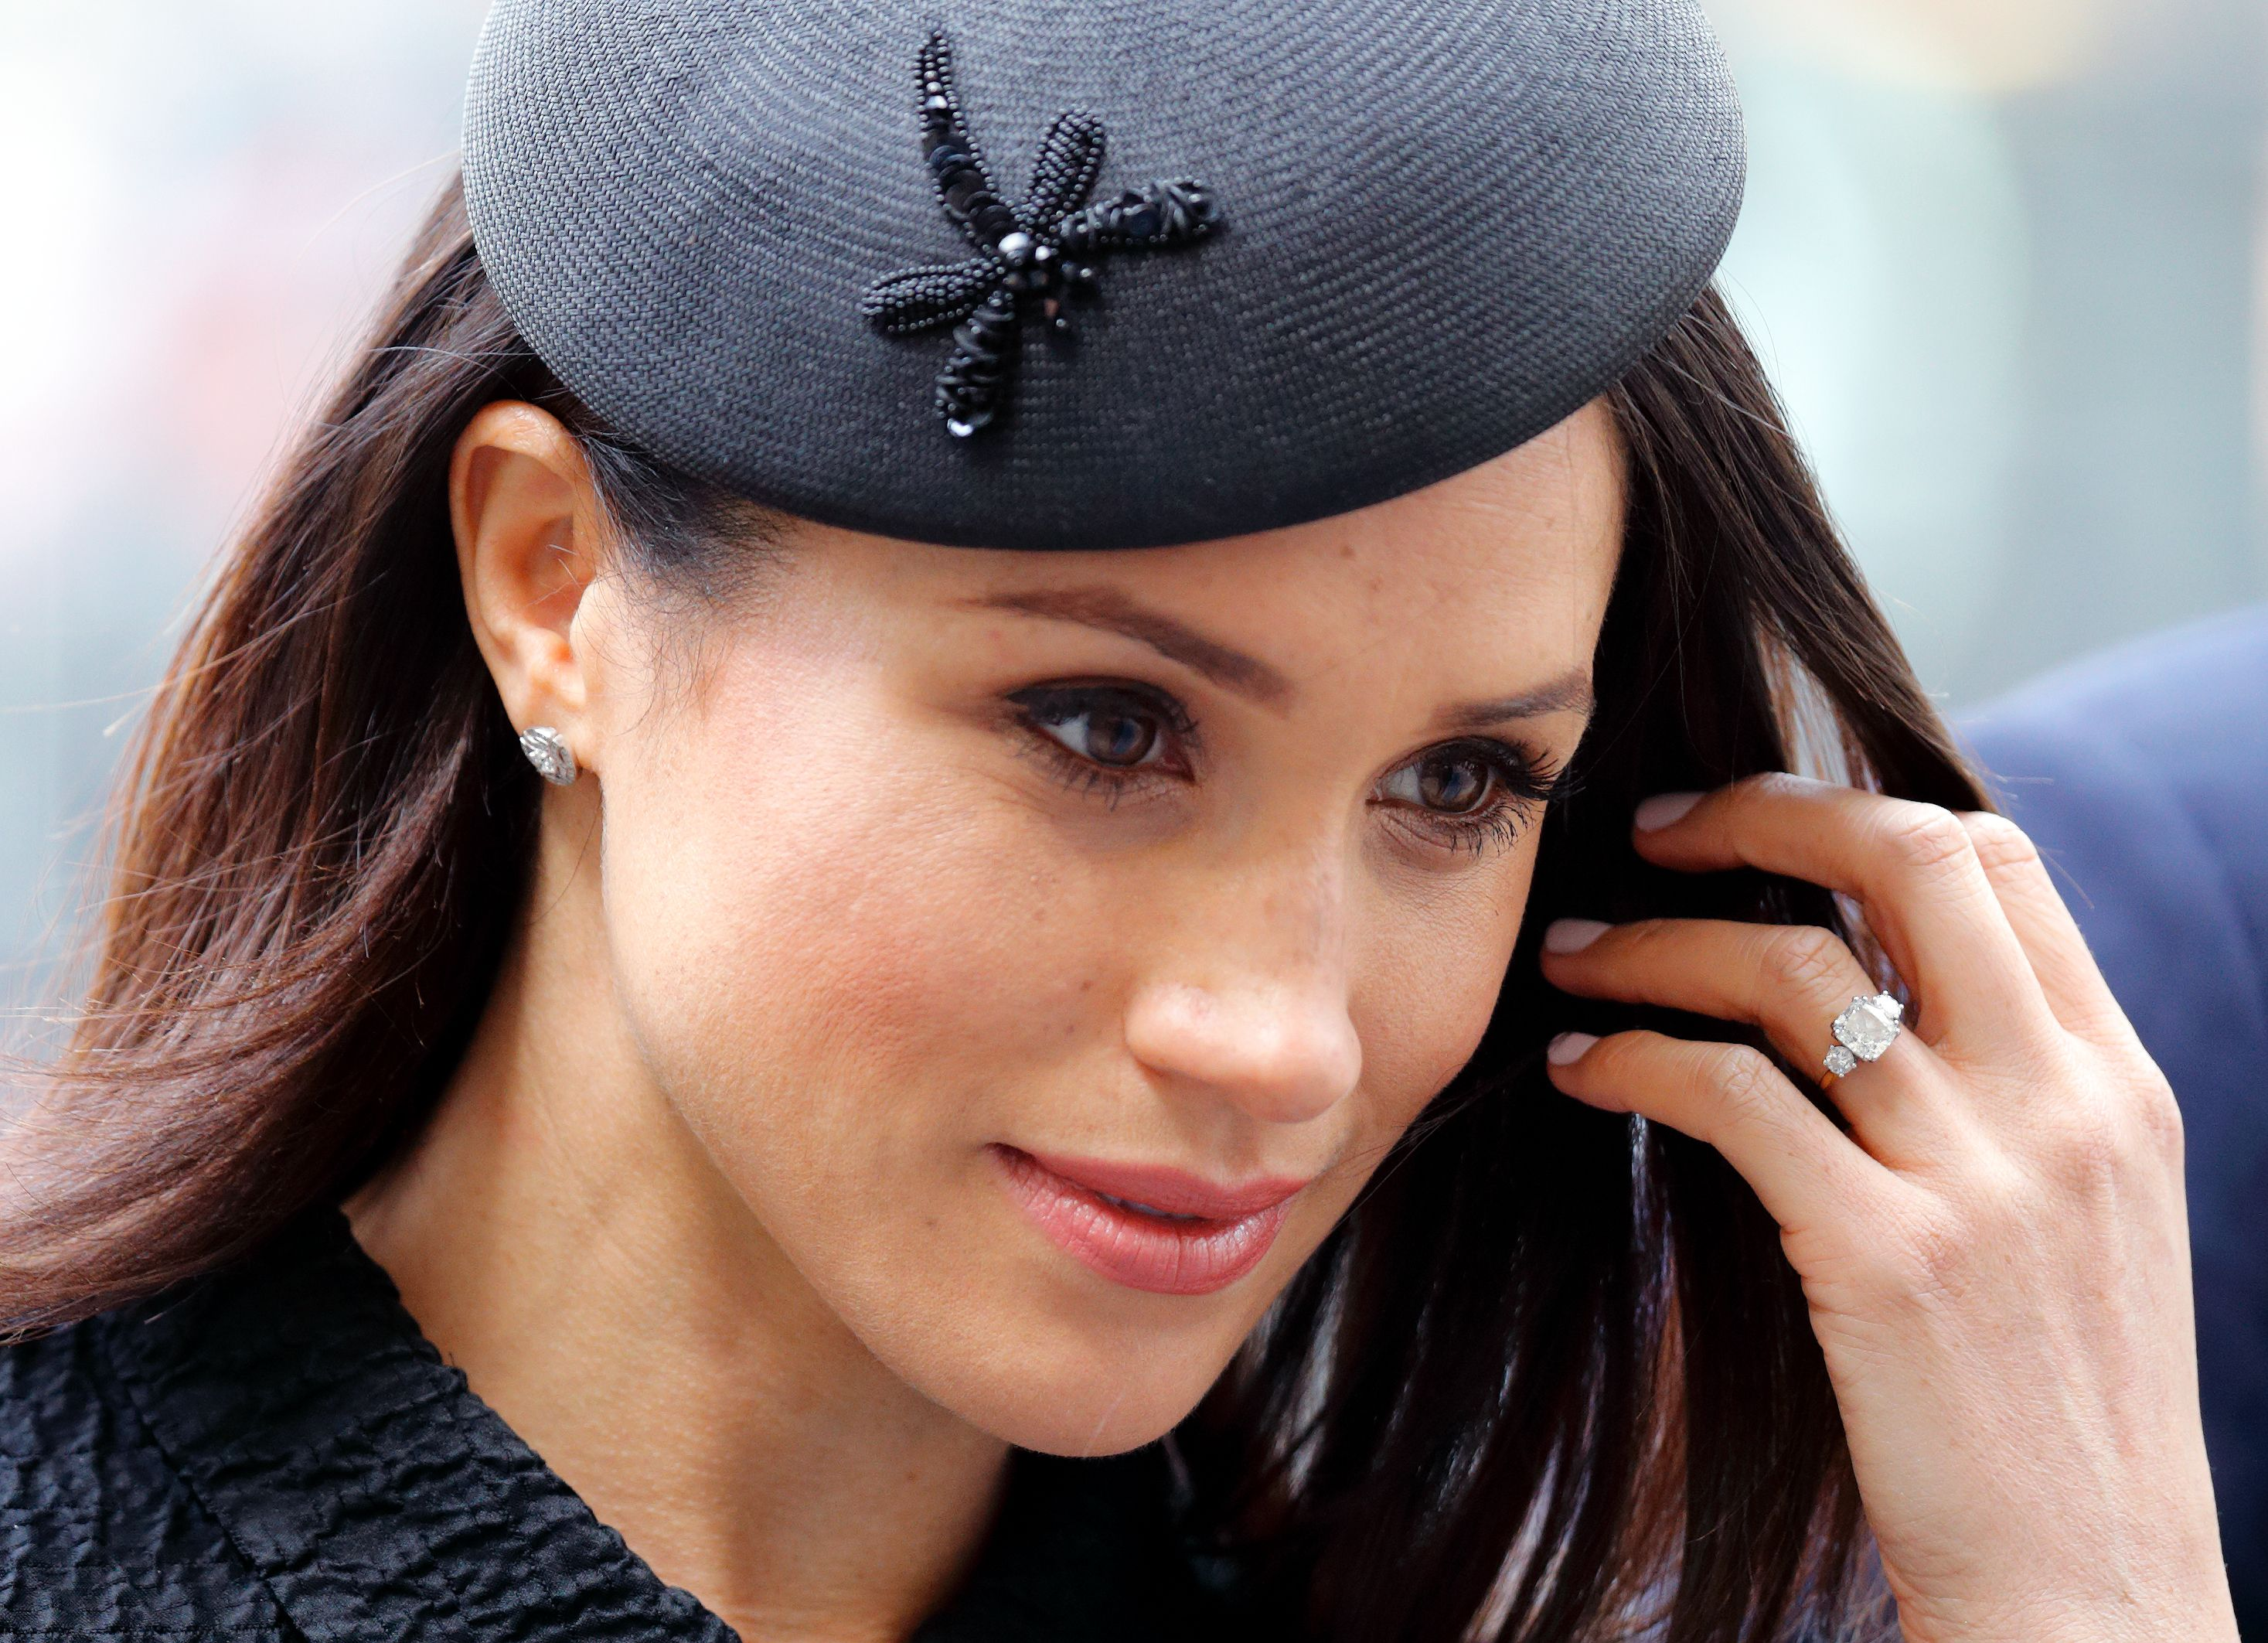 The Duchess of Sussex's engagement ring has had an upgrade